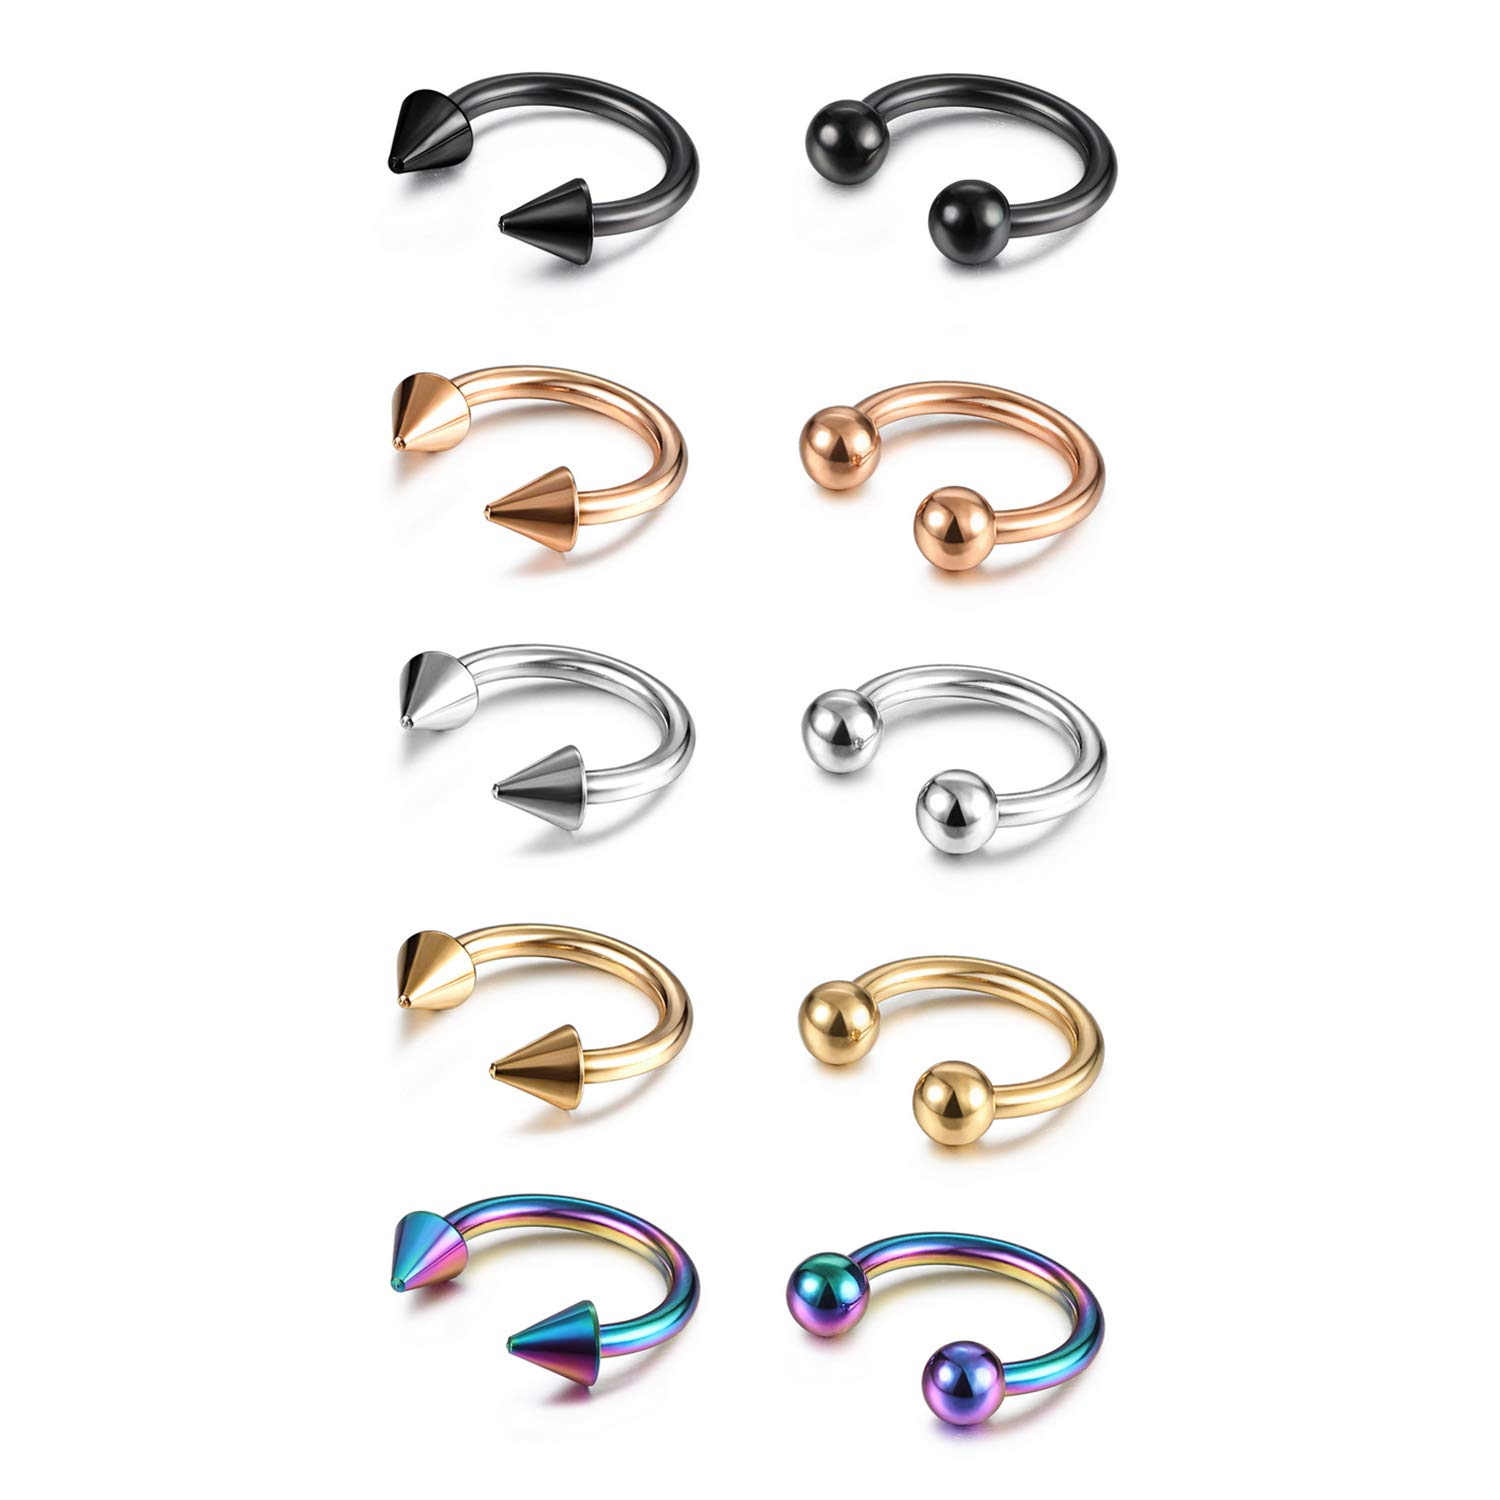 Evevil 16G Stainless Steel Septum Nose Ring Mixed 10 Pieces Septum Jewelry Set Horseshoe Hoop Earrings EV18JL050014-10P-F